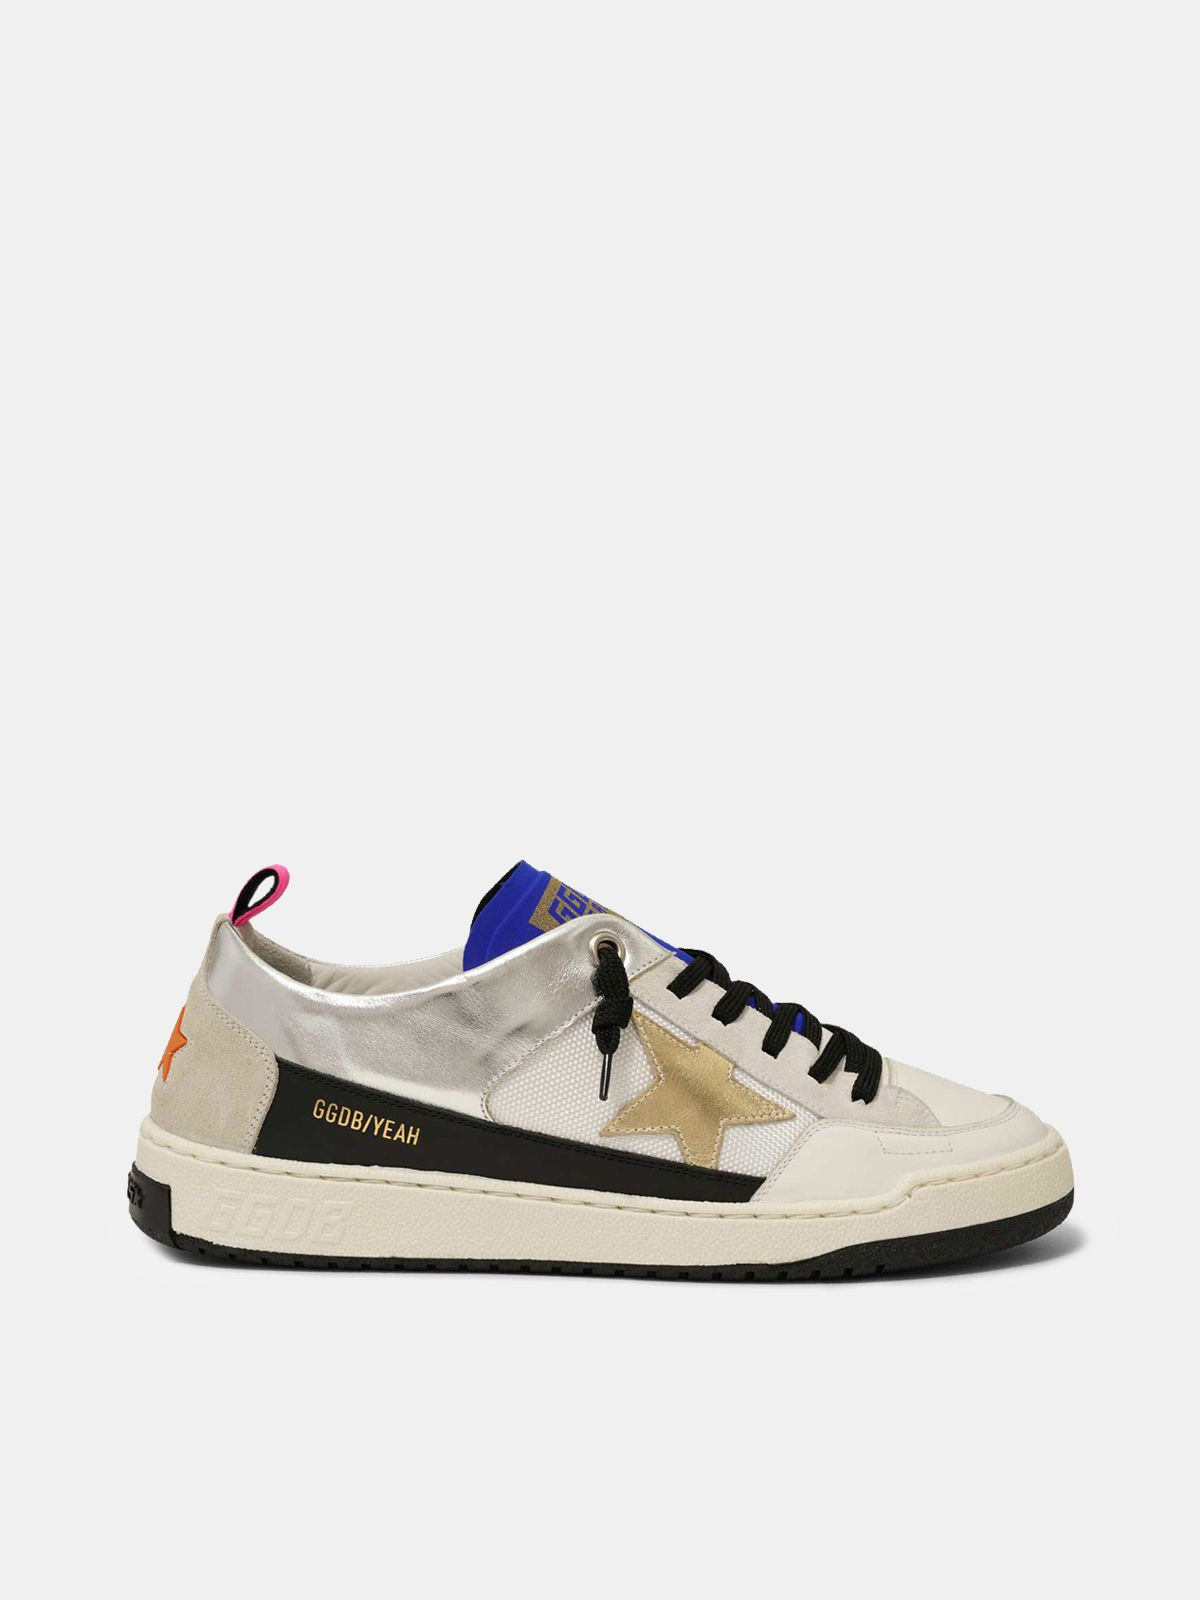 White Yeah! sneakers with gold star